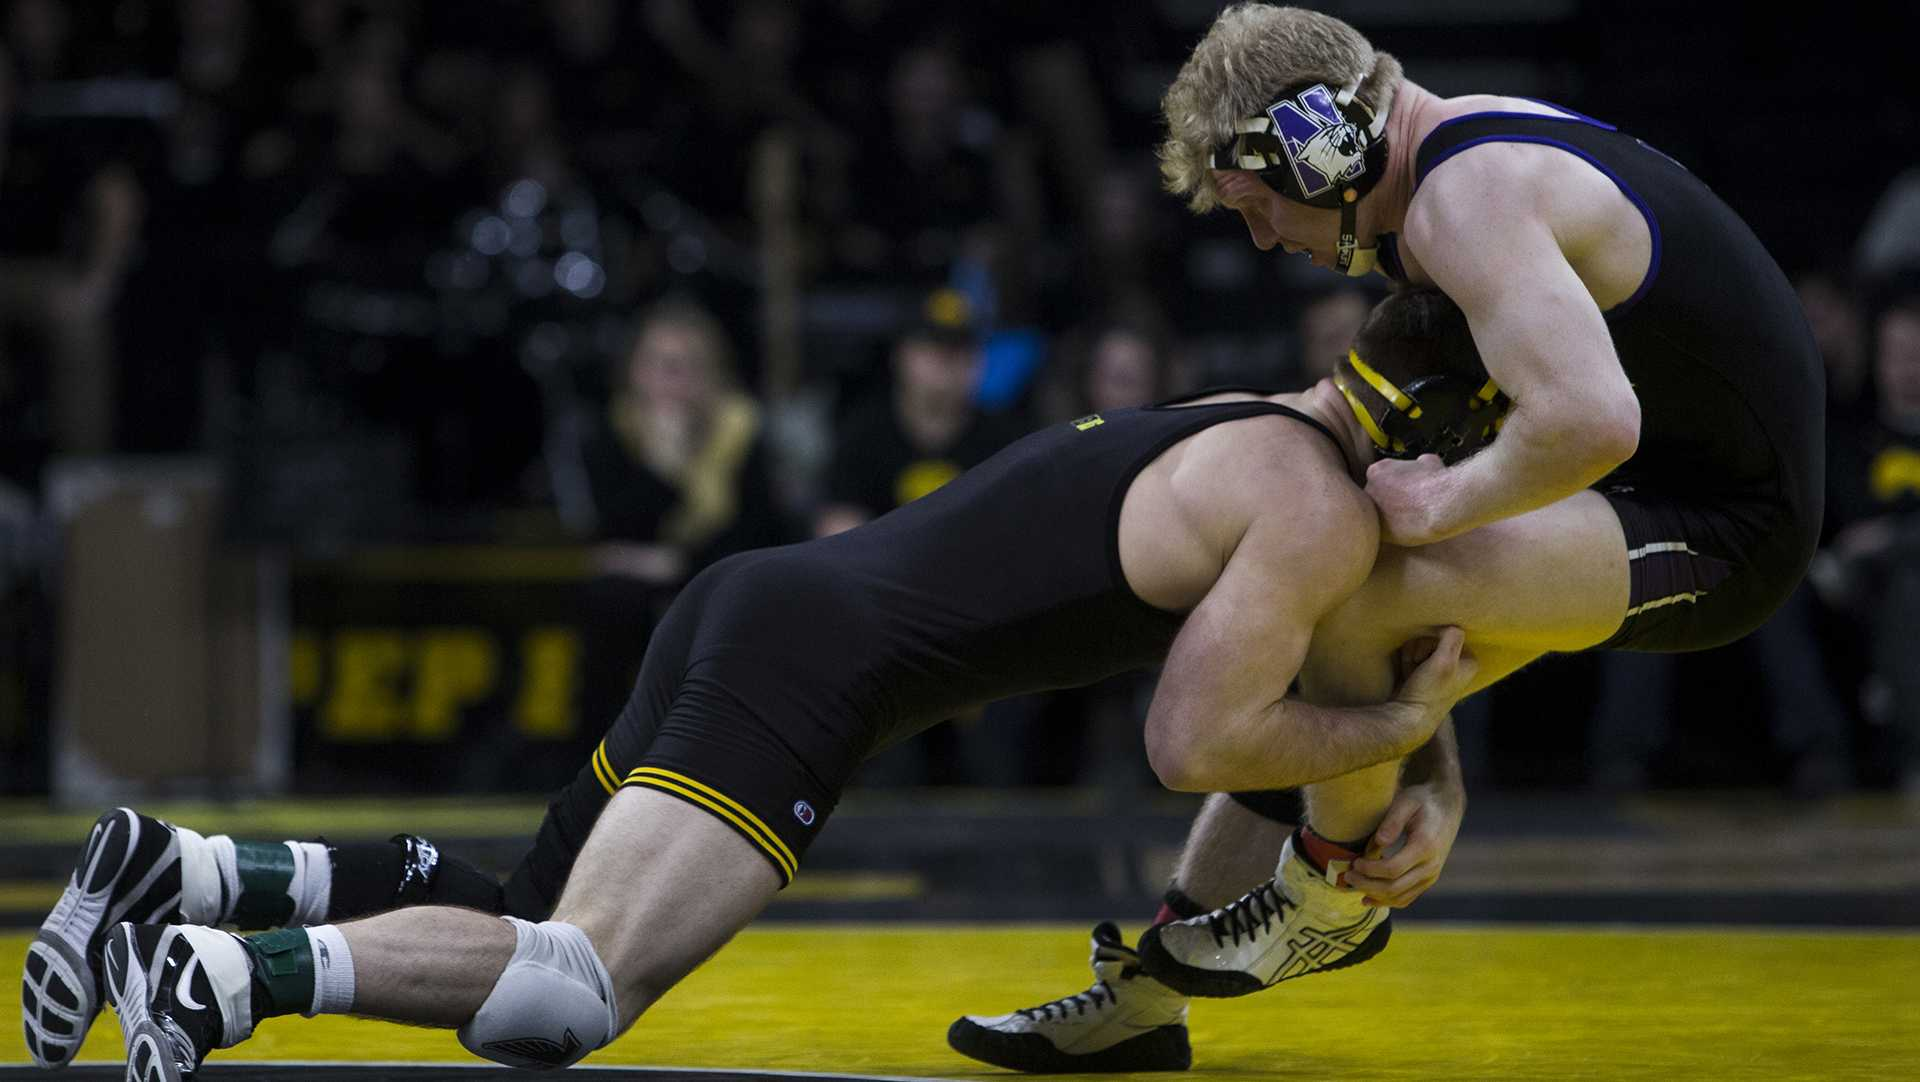 Iowa's #7 ranked 165 pound Alex Marinelli takes down Northwestern's Michael Sepke during the Iowa vs. Northwestern dual meet on Sunday, Feb. 4, 2018. The Hawkeyes defeated the wildcats 33-2. (Nick Rohlman/The Daily Iowan)